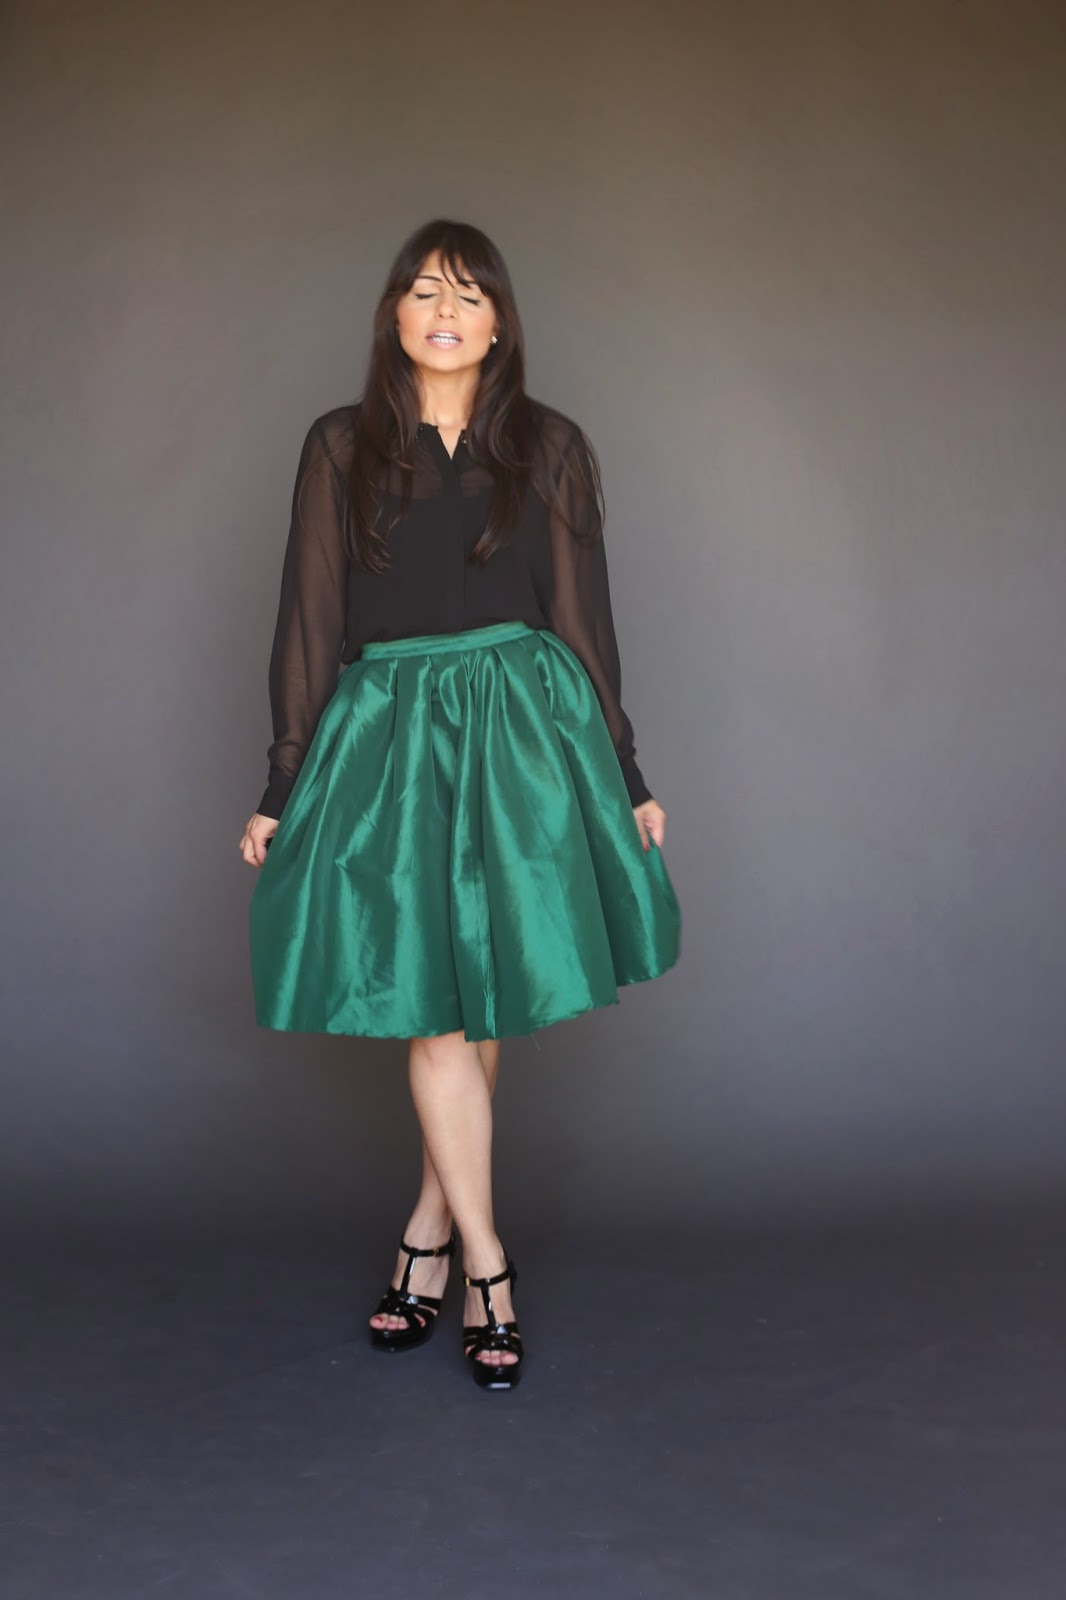 Knee length full metalic emerald green skirt modest tznius mormon lds pentecostal stylish fashionable Mode-sty